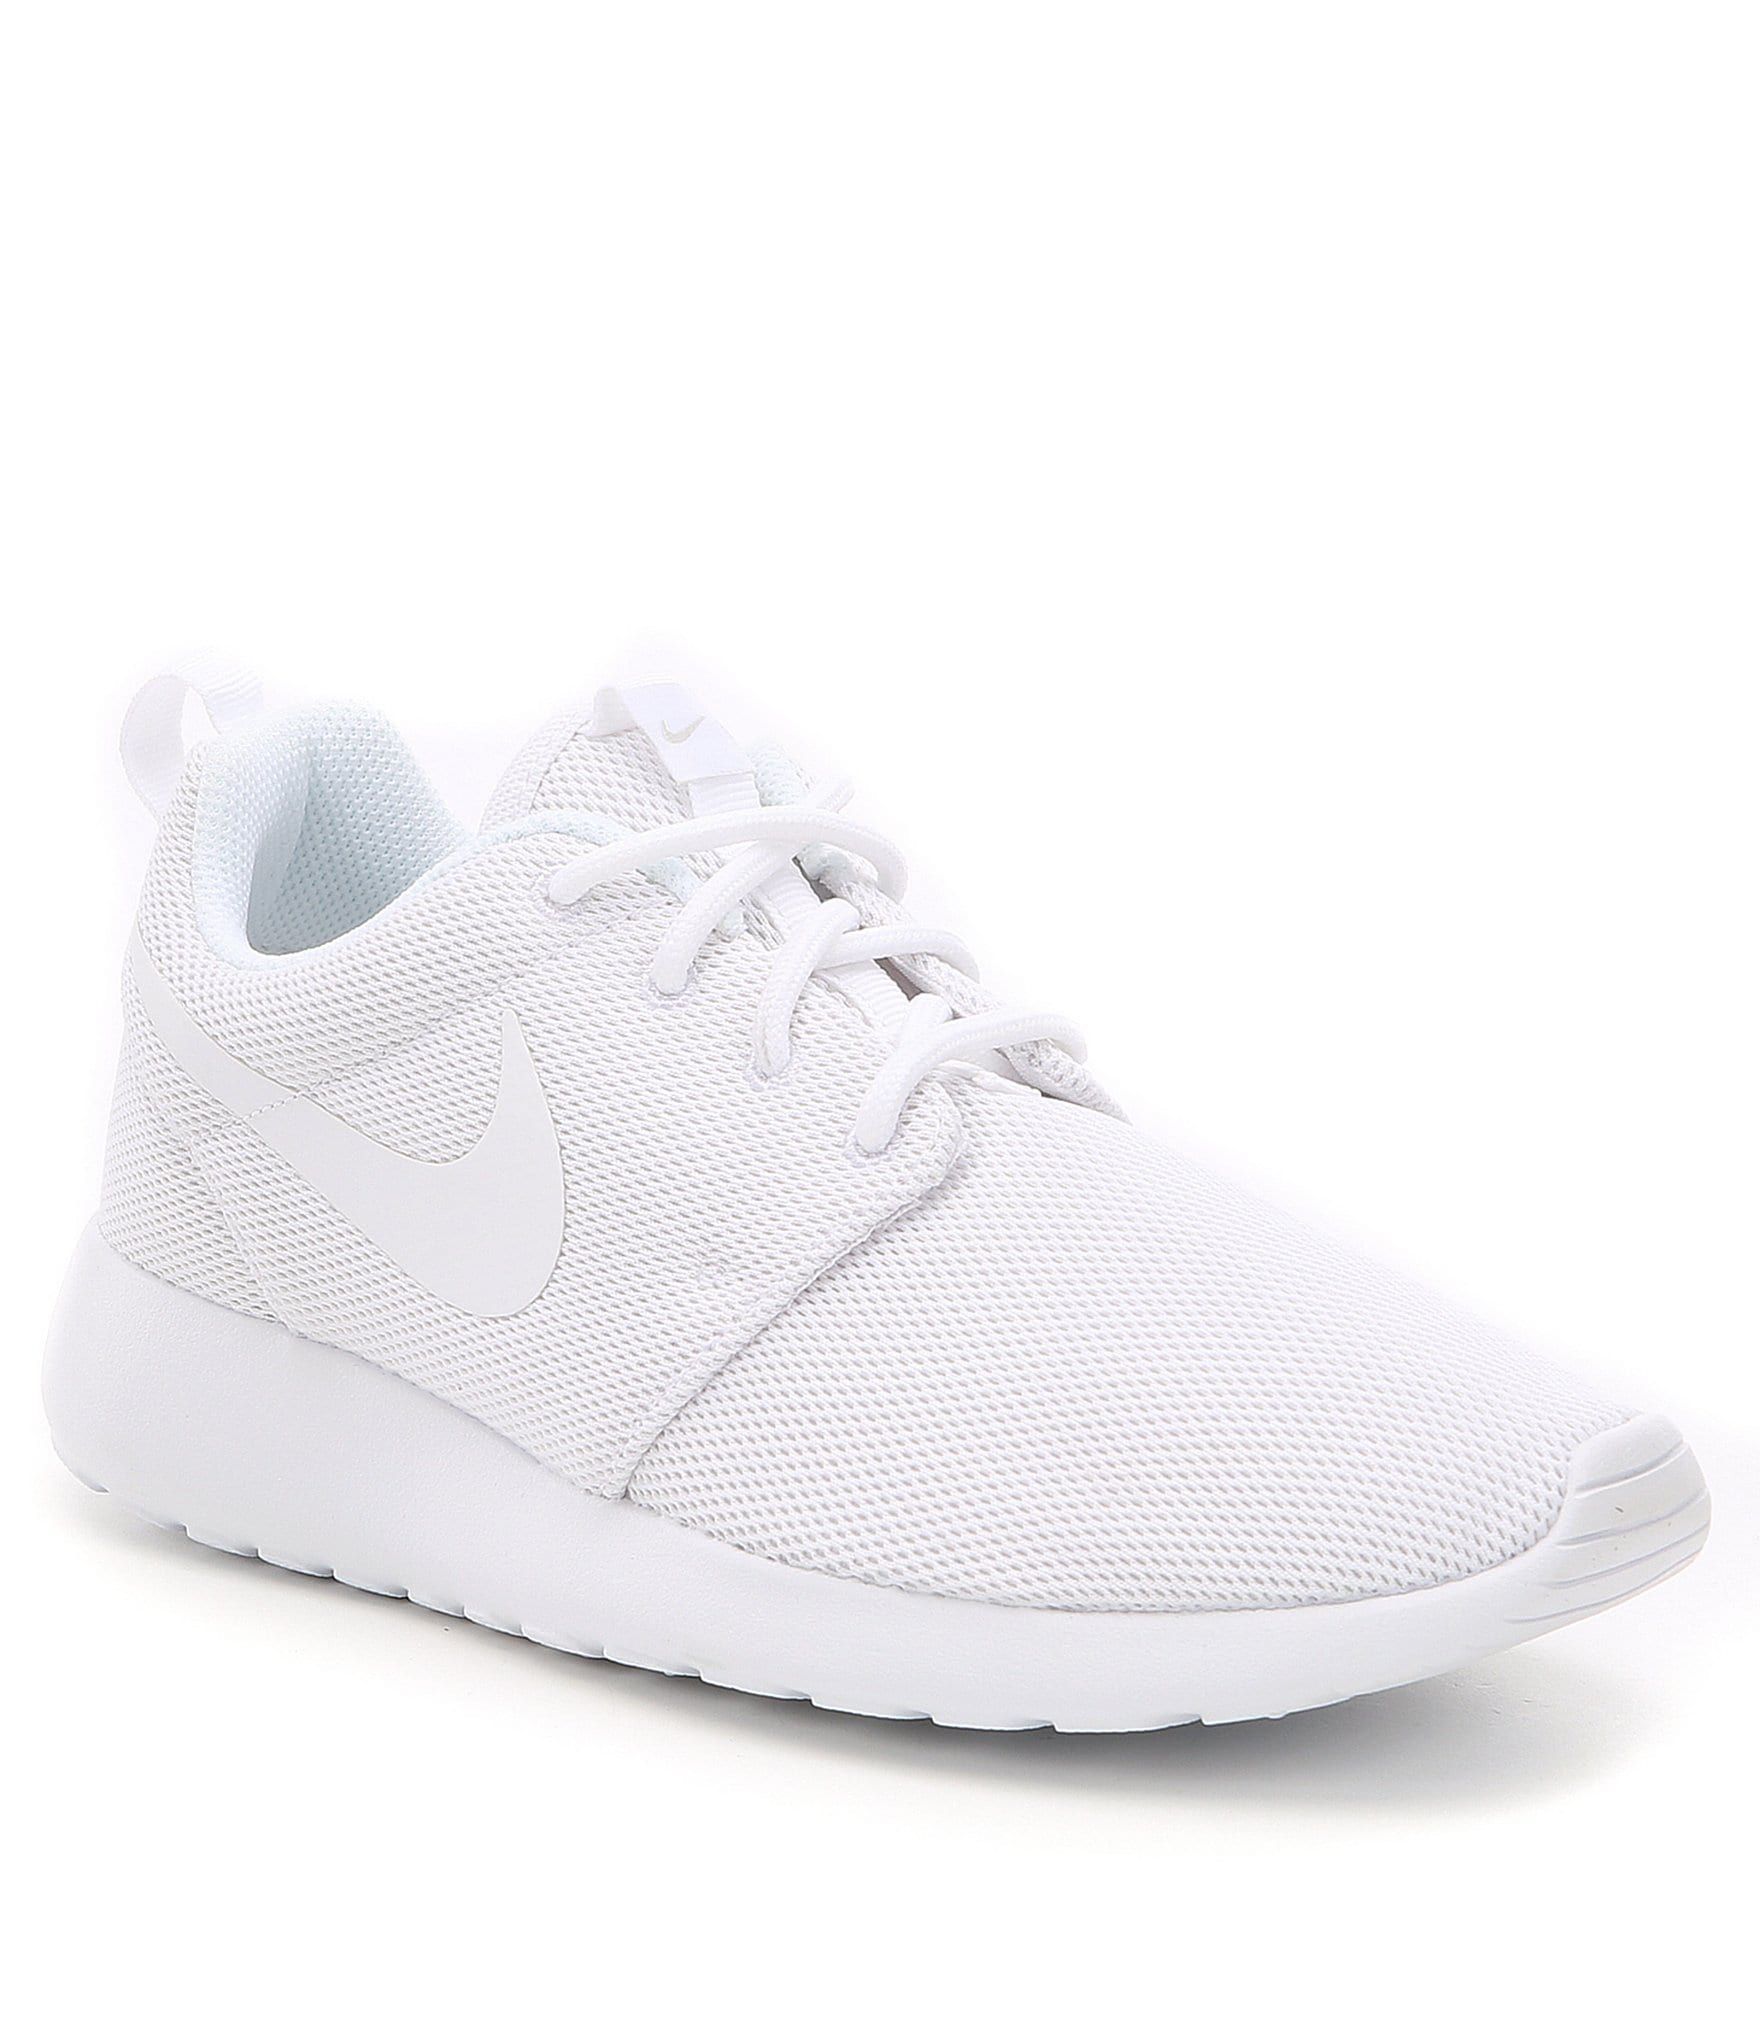 nike 180 s roshe one lifestyle shoes dillards